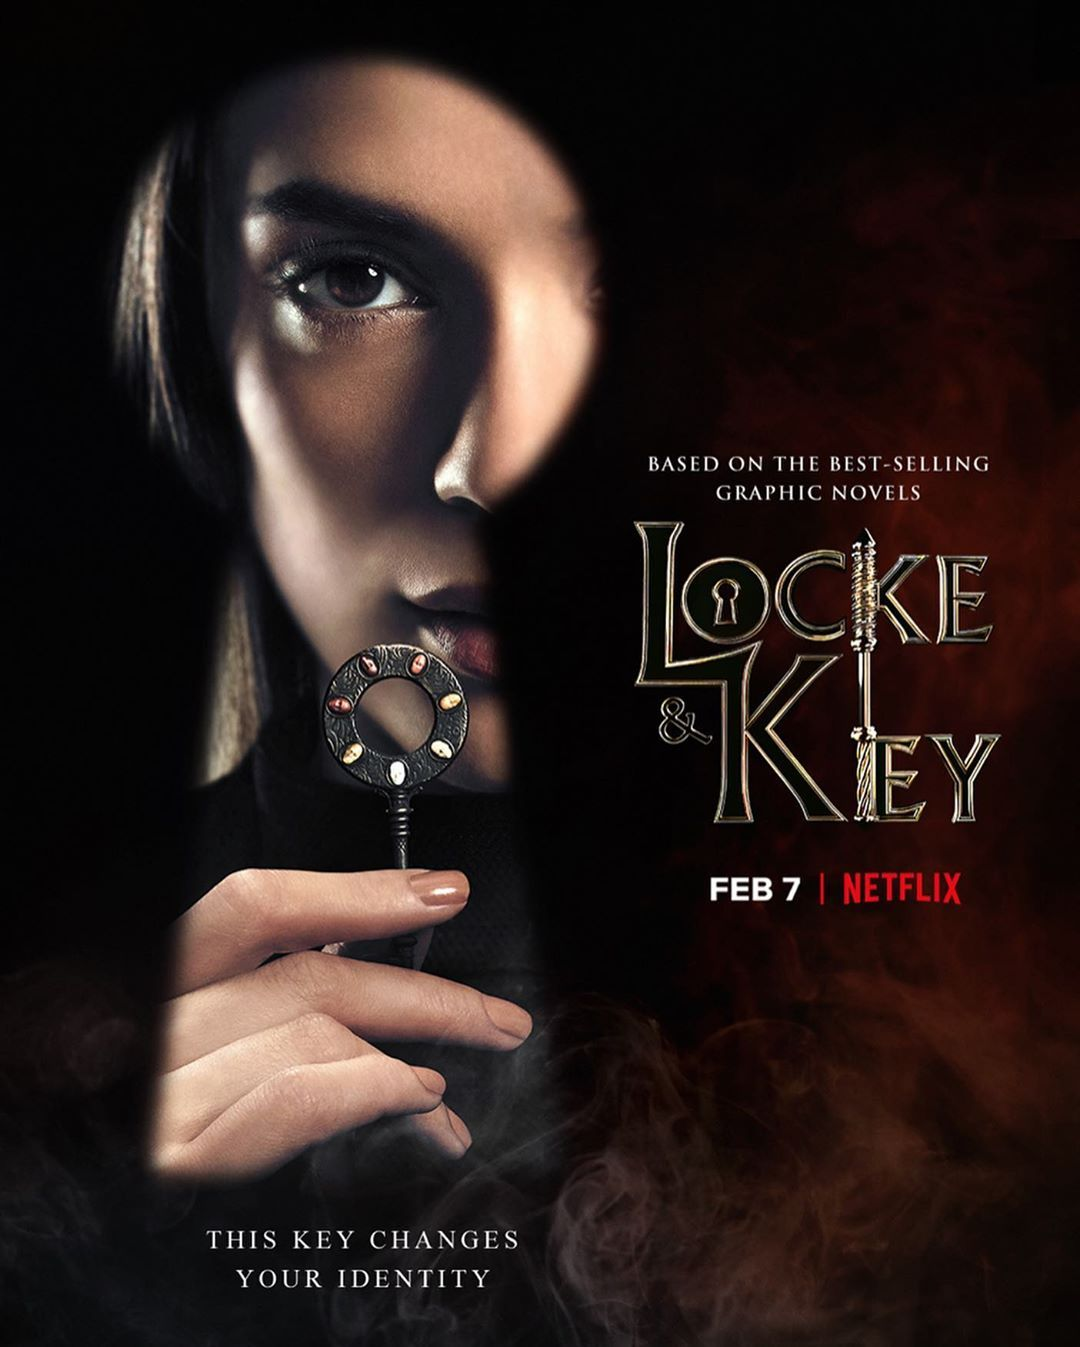 What and When Can We Expect Locke and Key Season 3 To Air on Netflix?